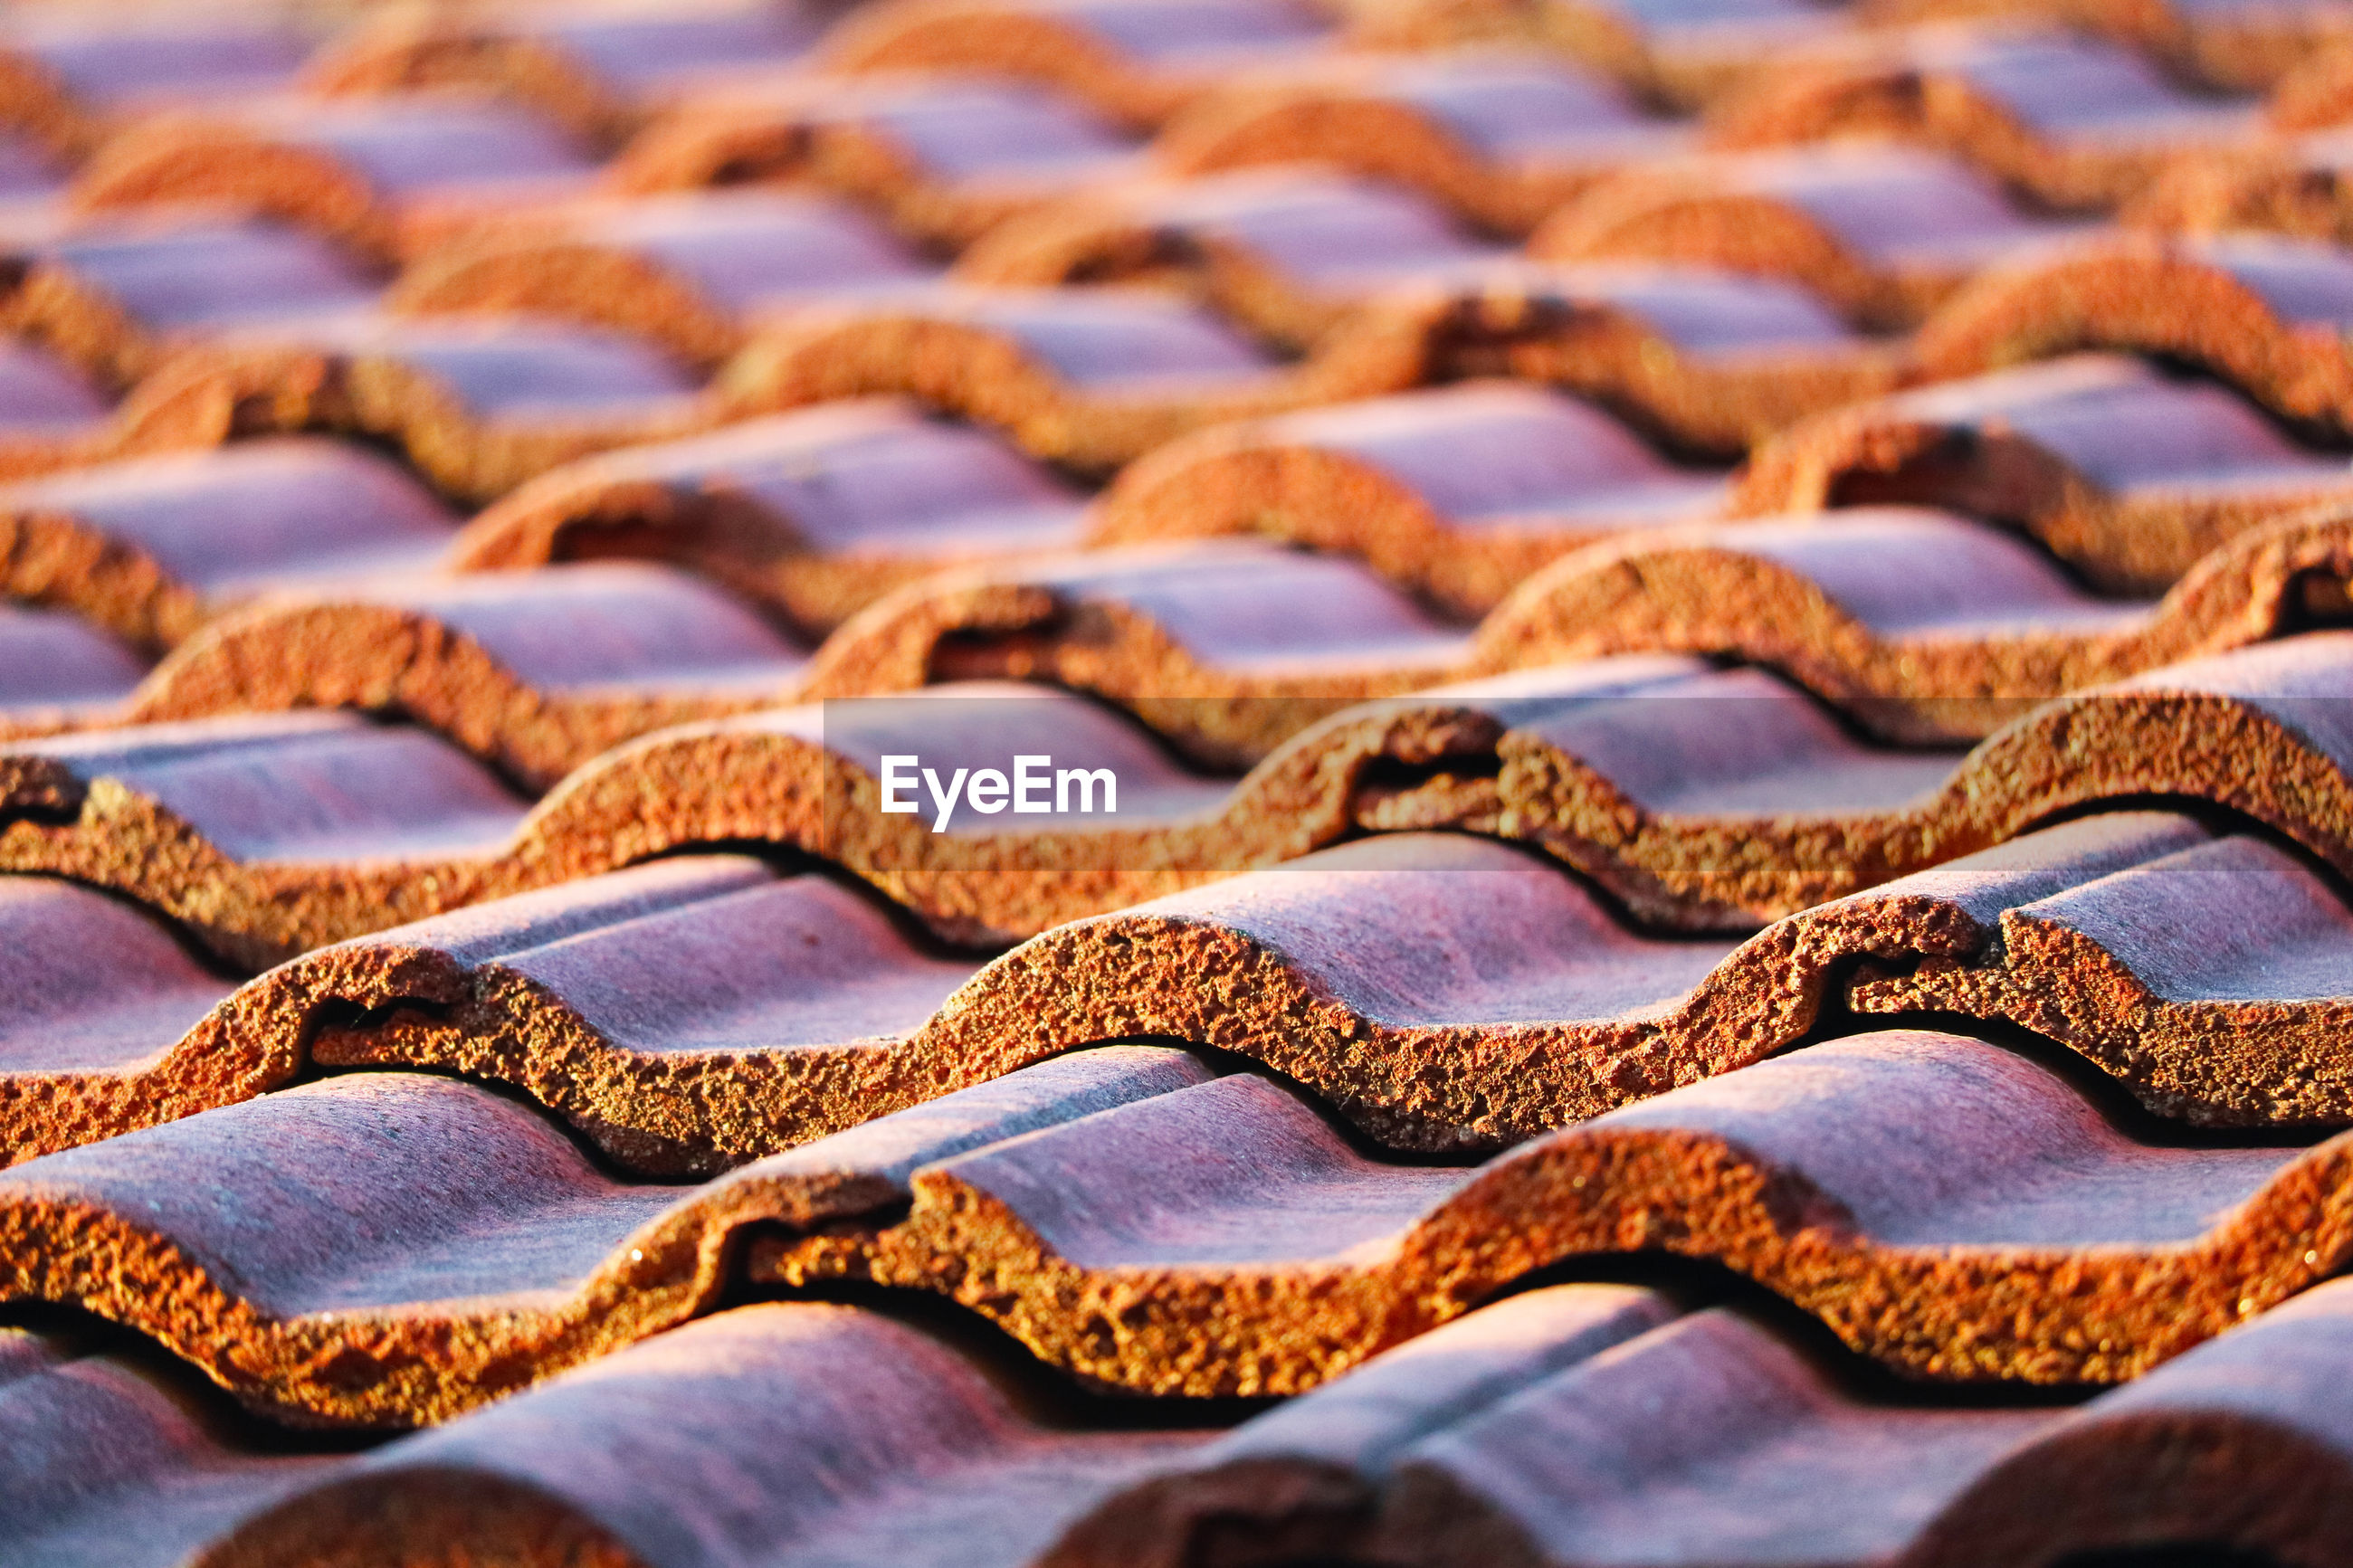 Roof tiles are designed to be aligned and able stacked to be waterproof, rainproof and resistant sun